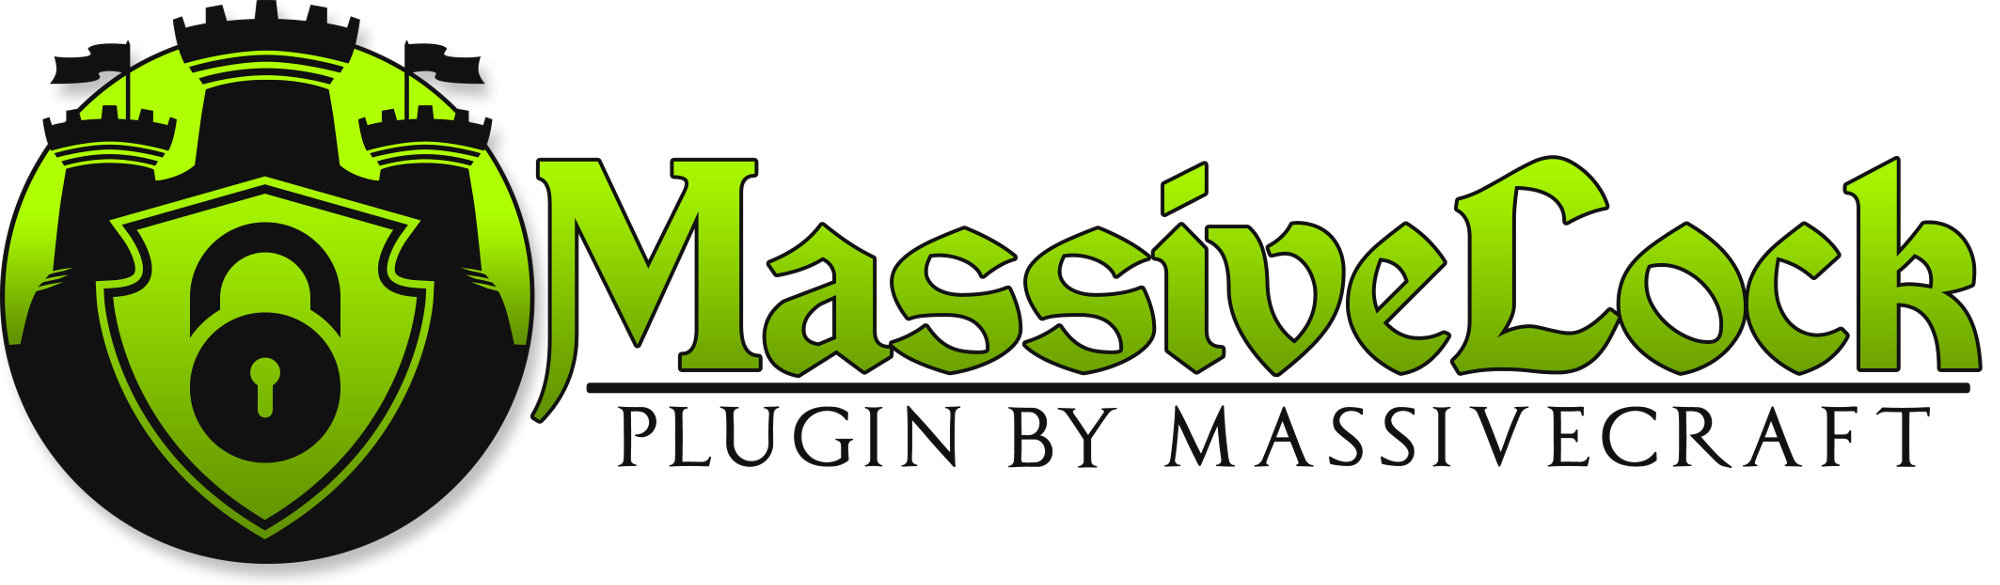 massivecraft-logotype-plugin-massivelock-2000